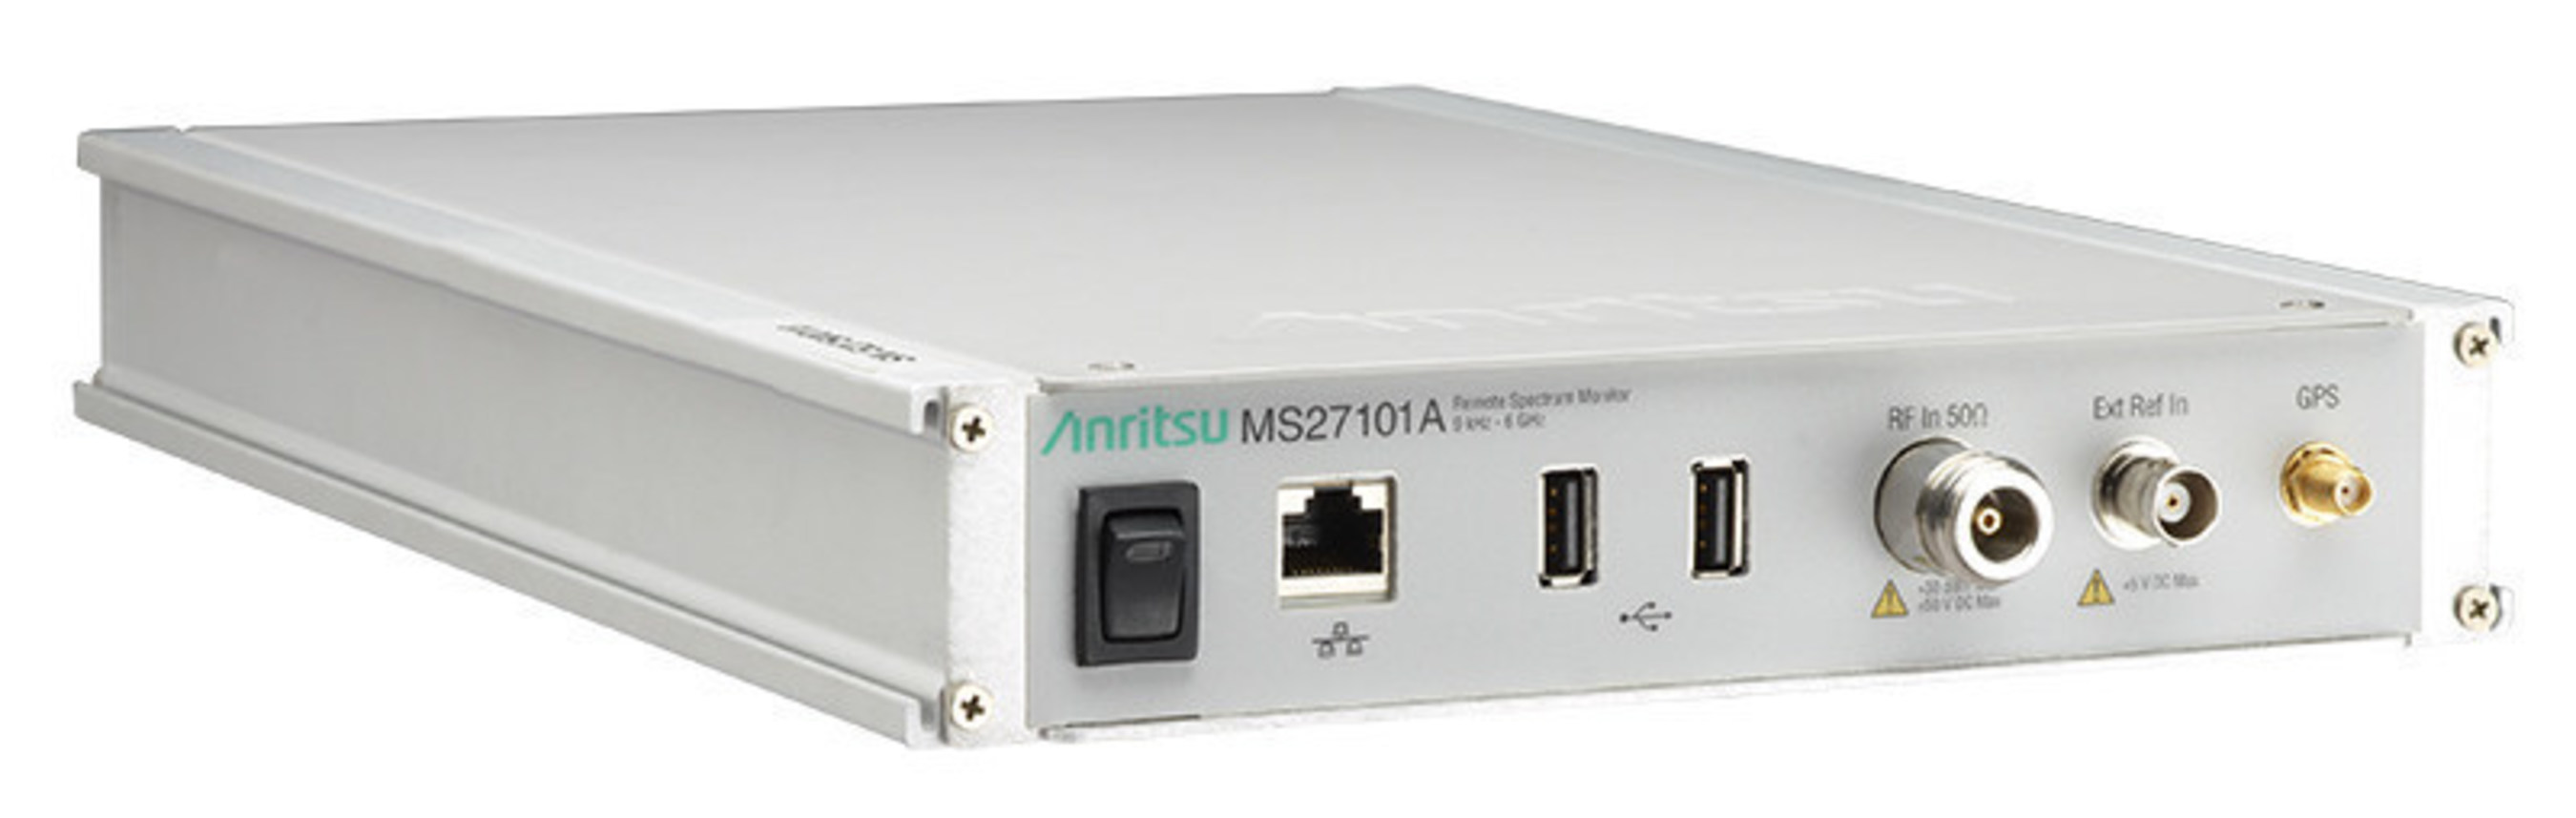 Anritsu Continues to Meet Market Need for Interference Hunting Tools with Introduction of MS27101A Remote Spectrum Monitor